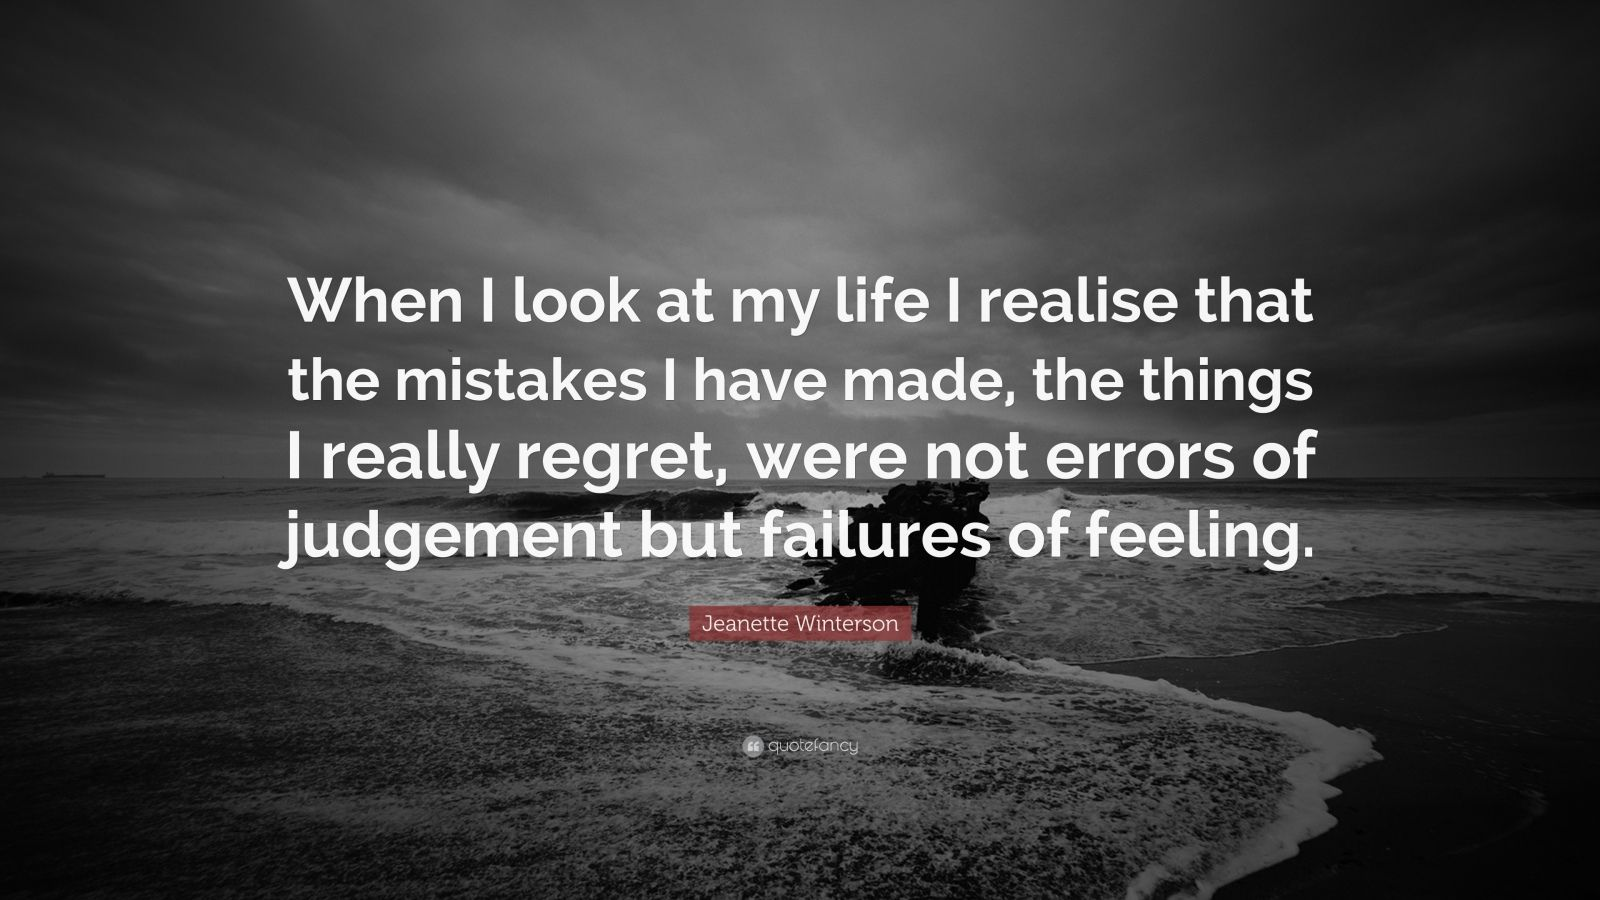 "Jeanette Winterson Quote: ""When I look at my life I realise that the mistakes I have made, the things I really regret, were not errors of judgement but failures of feeling."""